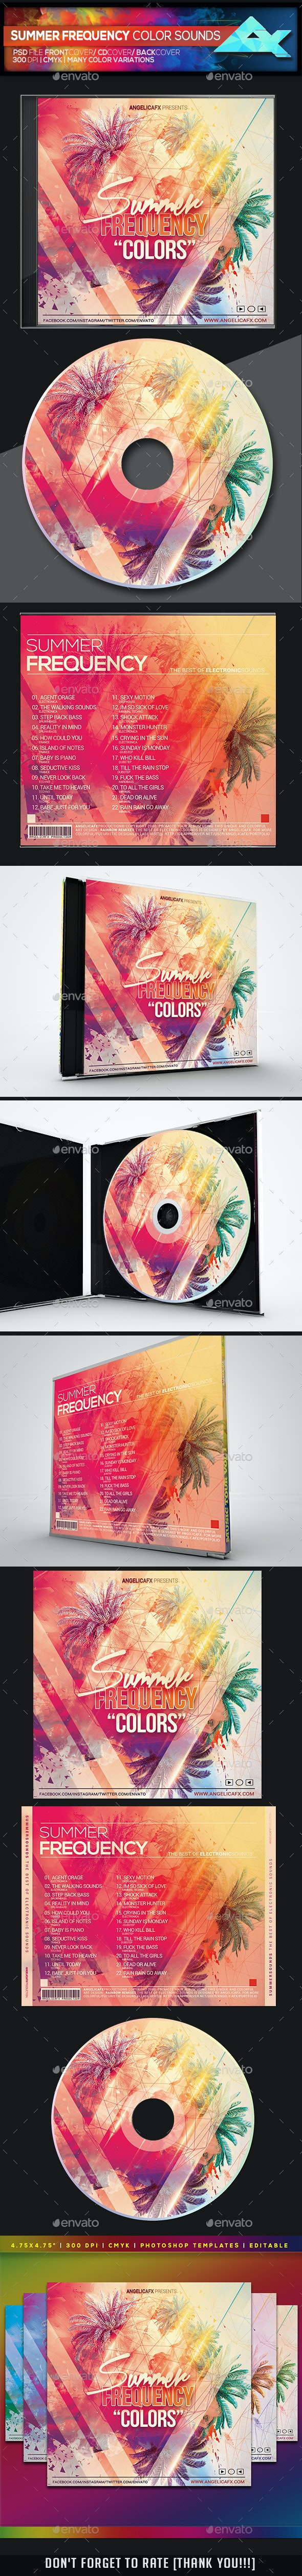 Summer Frequency Color Sounds CD/DVD Template